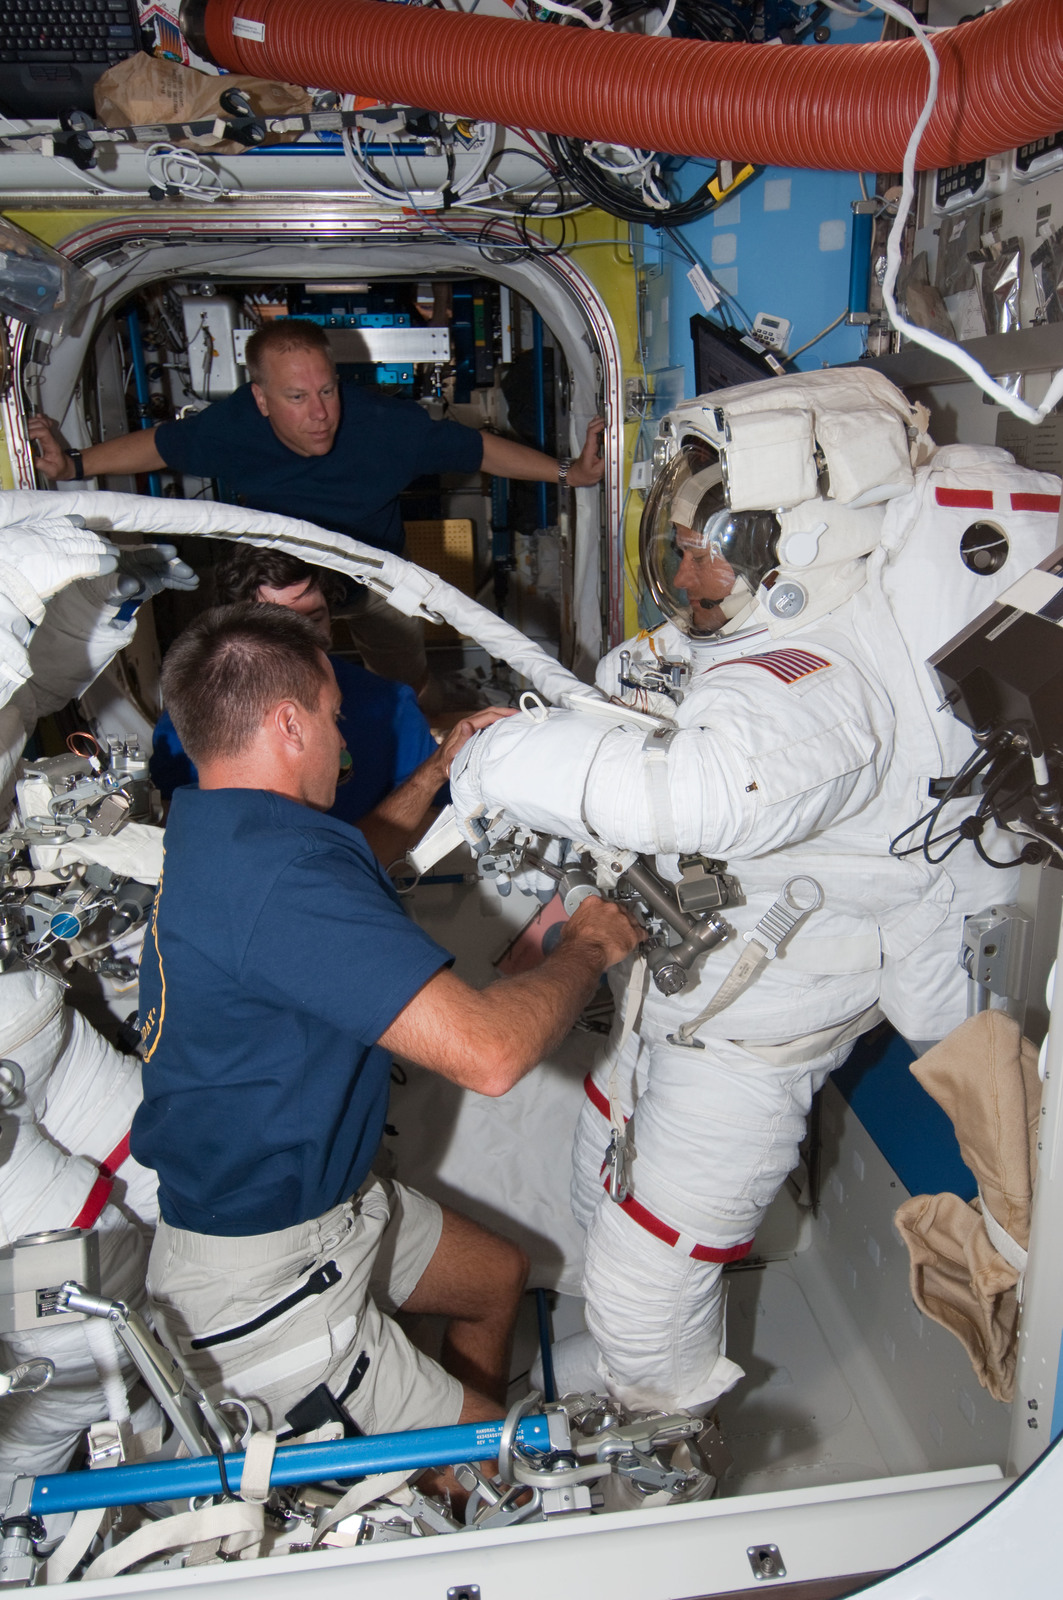 S127E007053 - STS-127 - Cassidy assists Marshburn with his EMU during Joint Operations